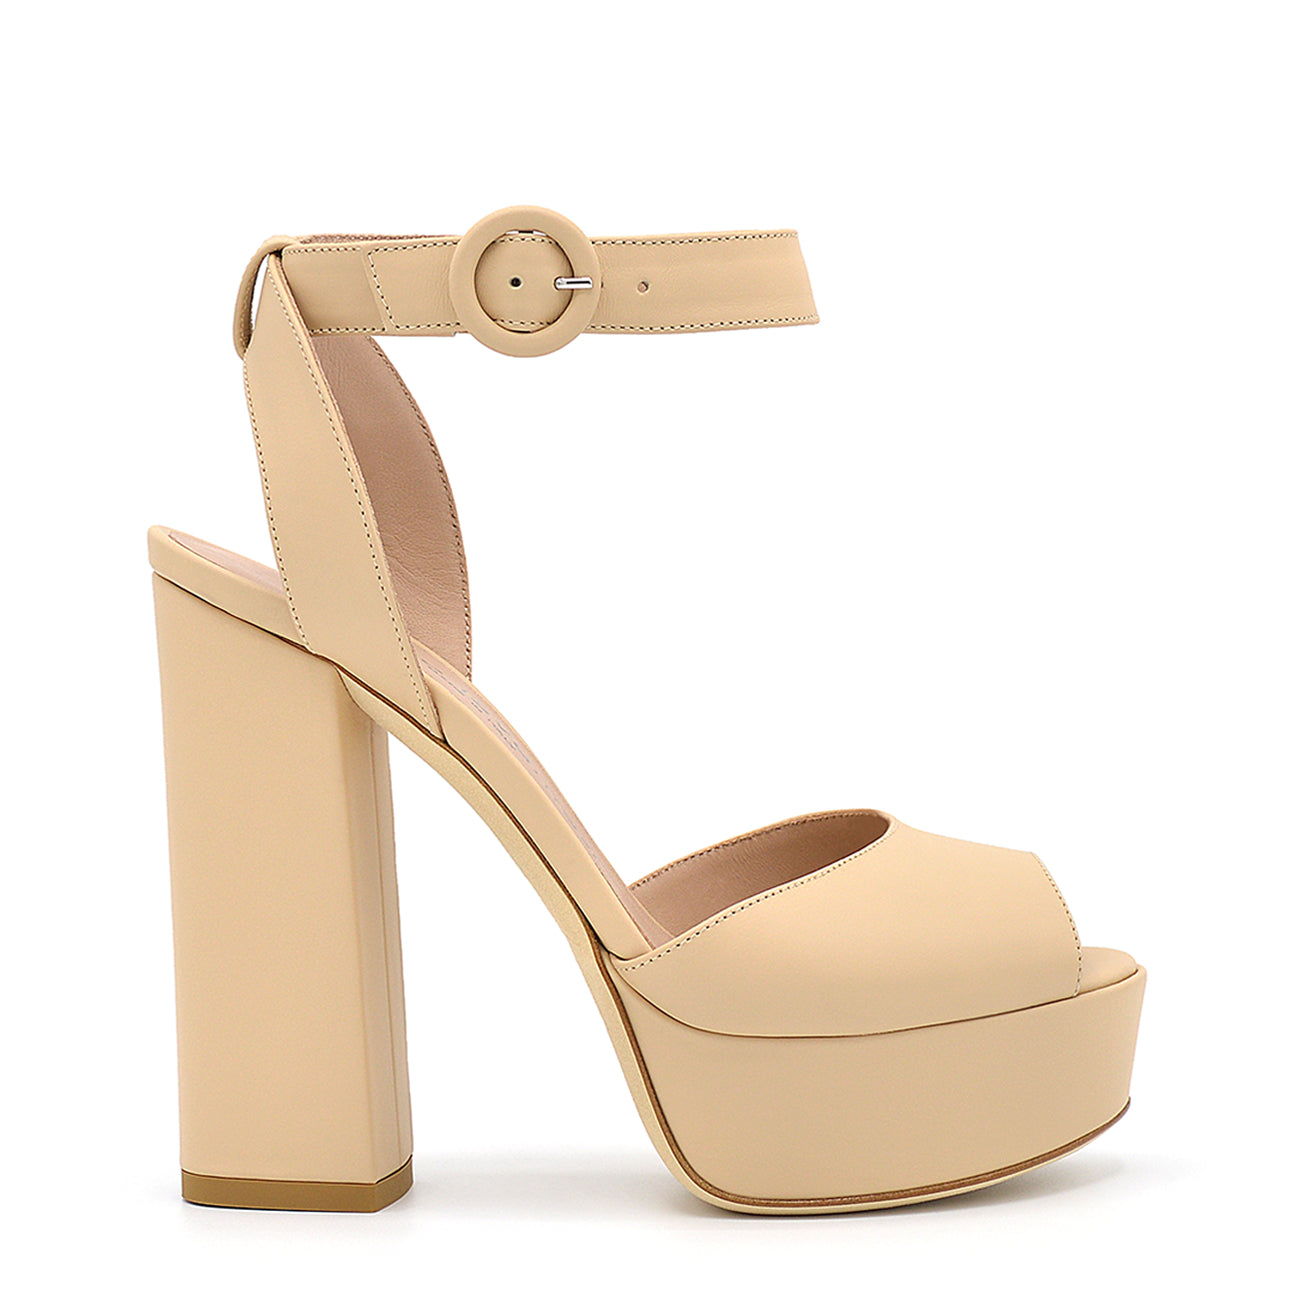 Vishy. <br> Timeless high-heel sand beige calfskin platform sandals